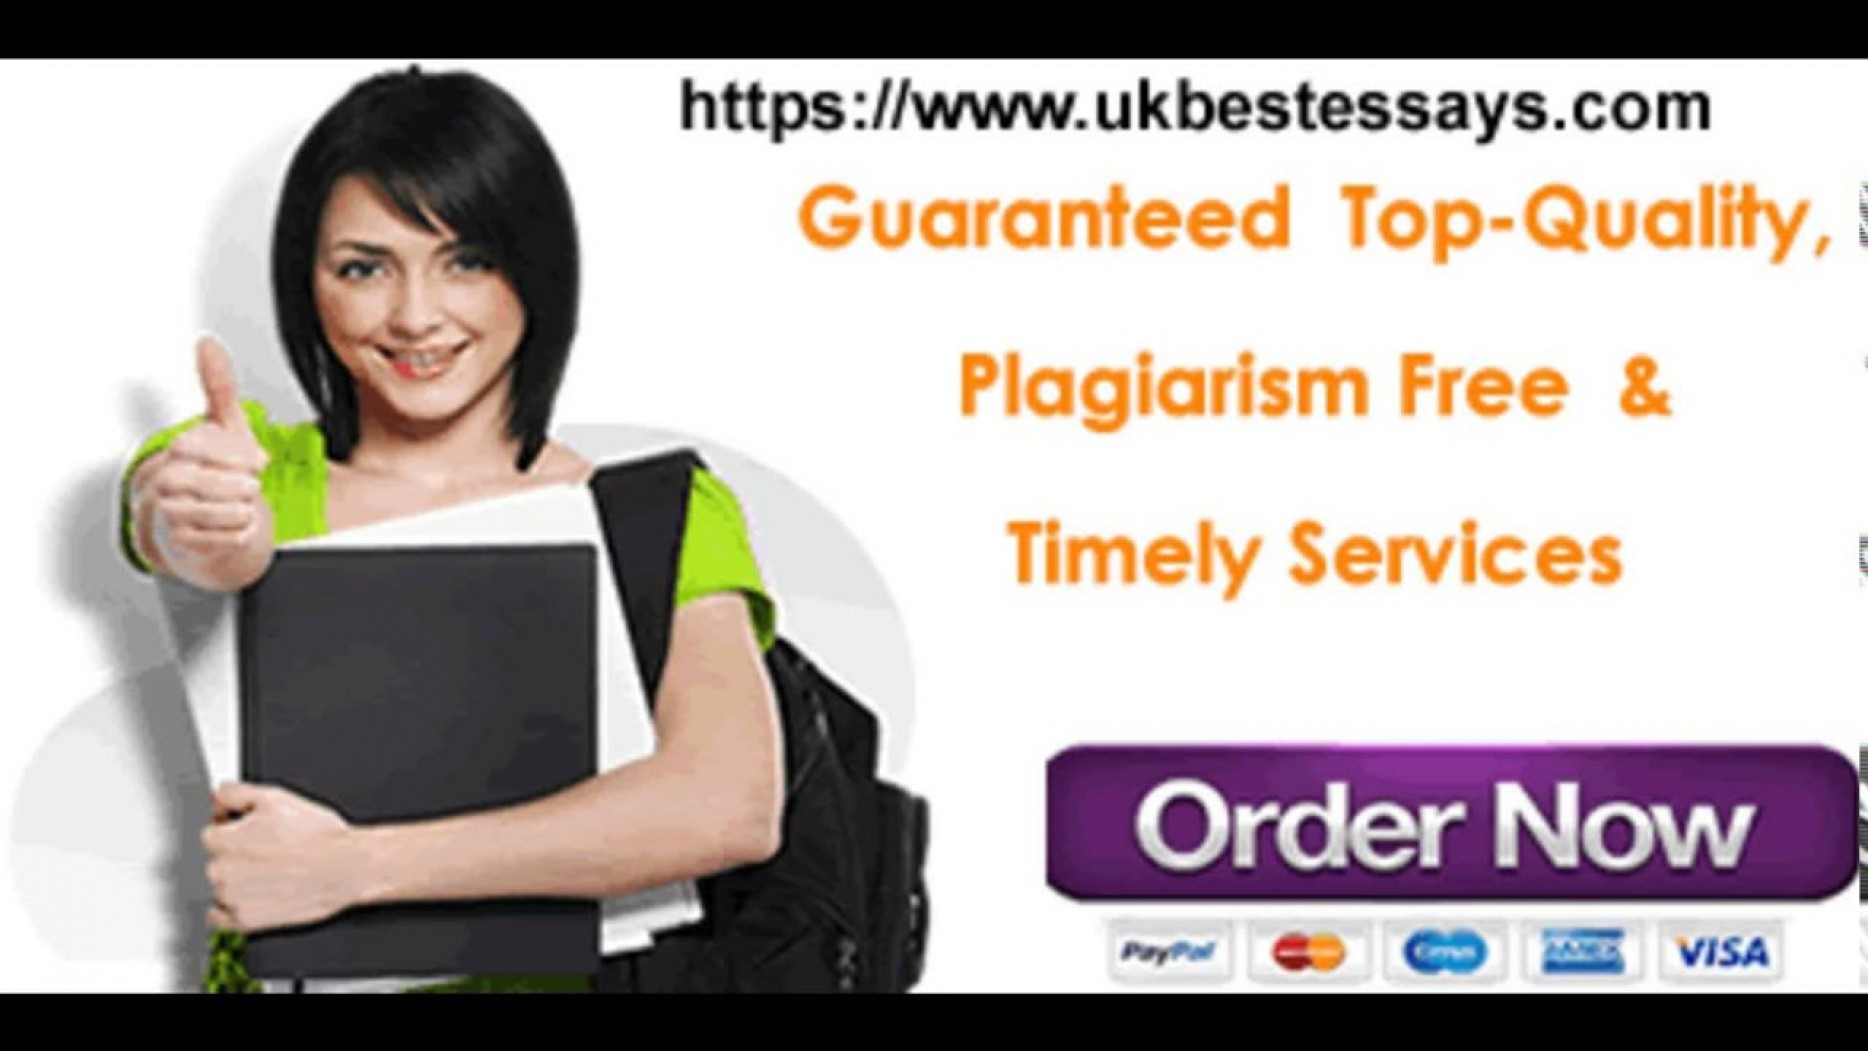 007 Essay Example Best Writing Service Reviews Singular Top Review Reddit Uk 1920